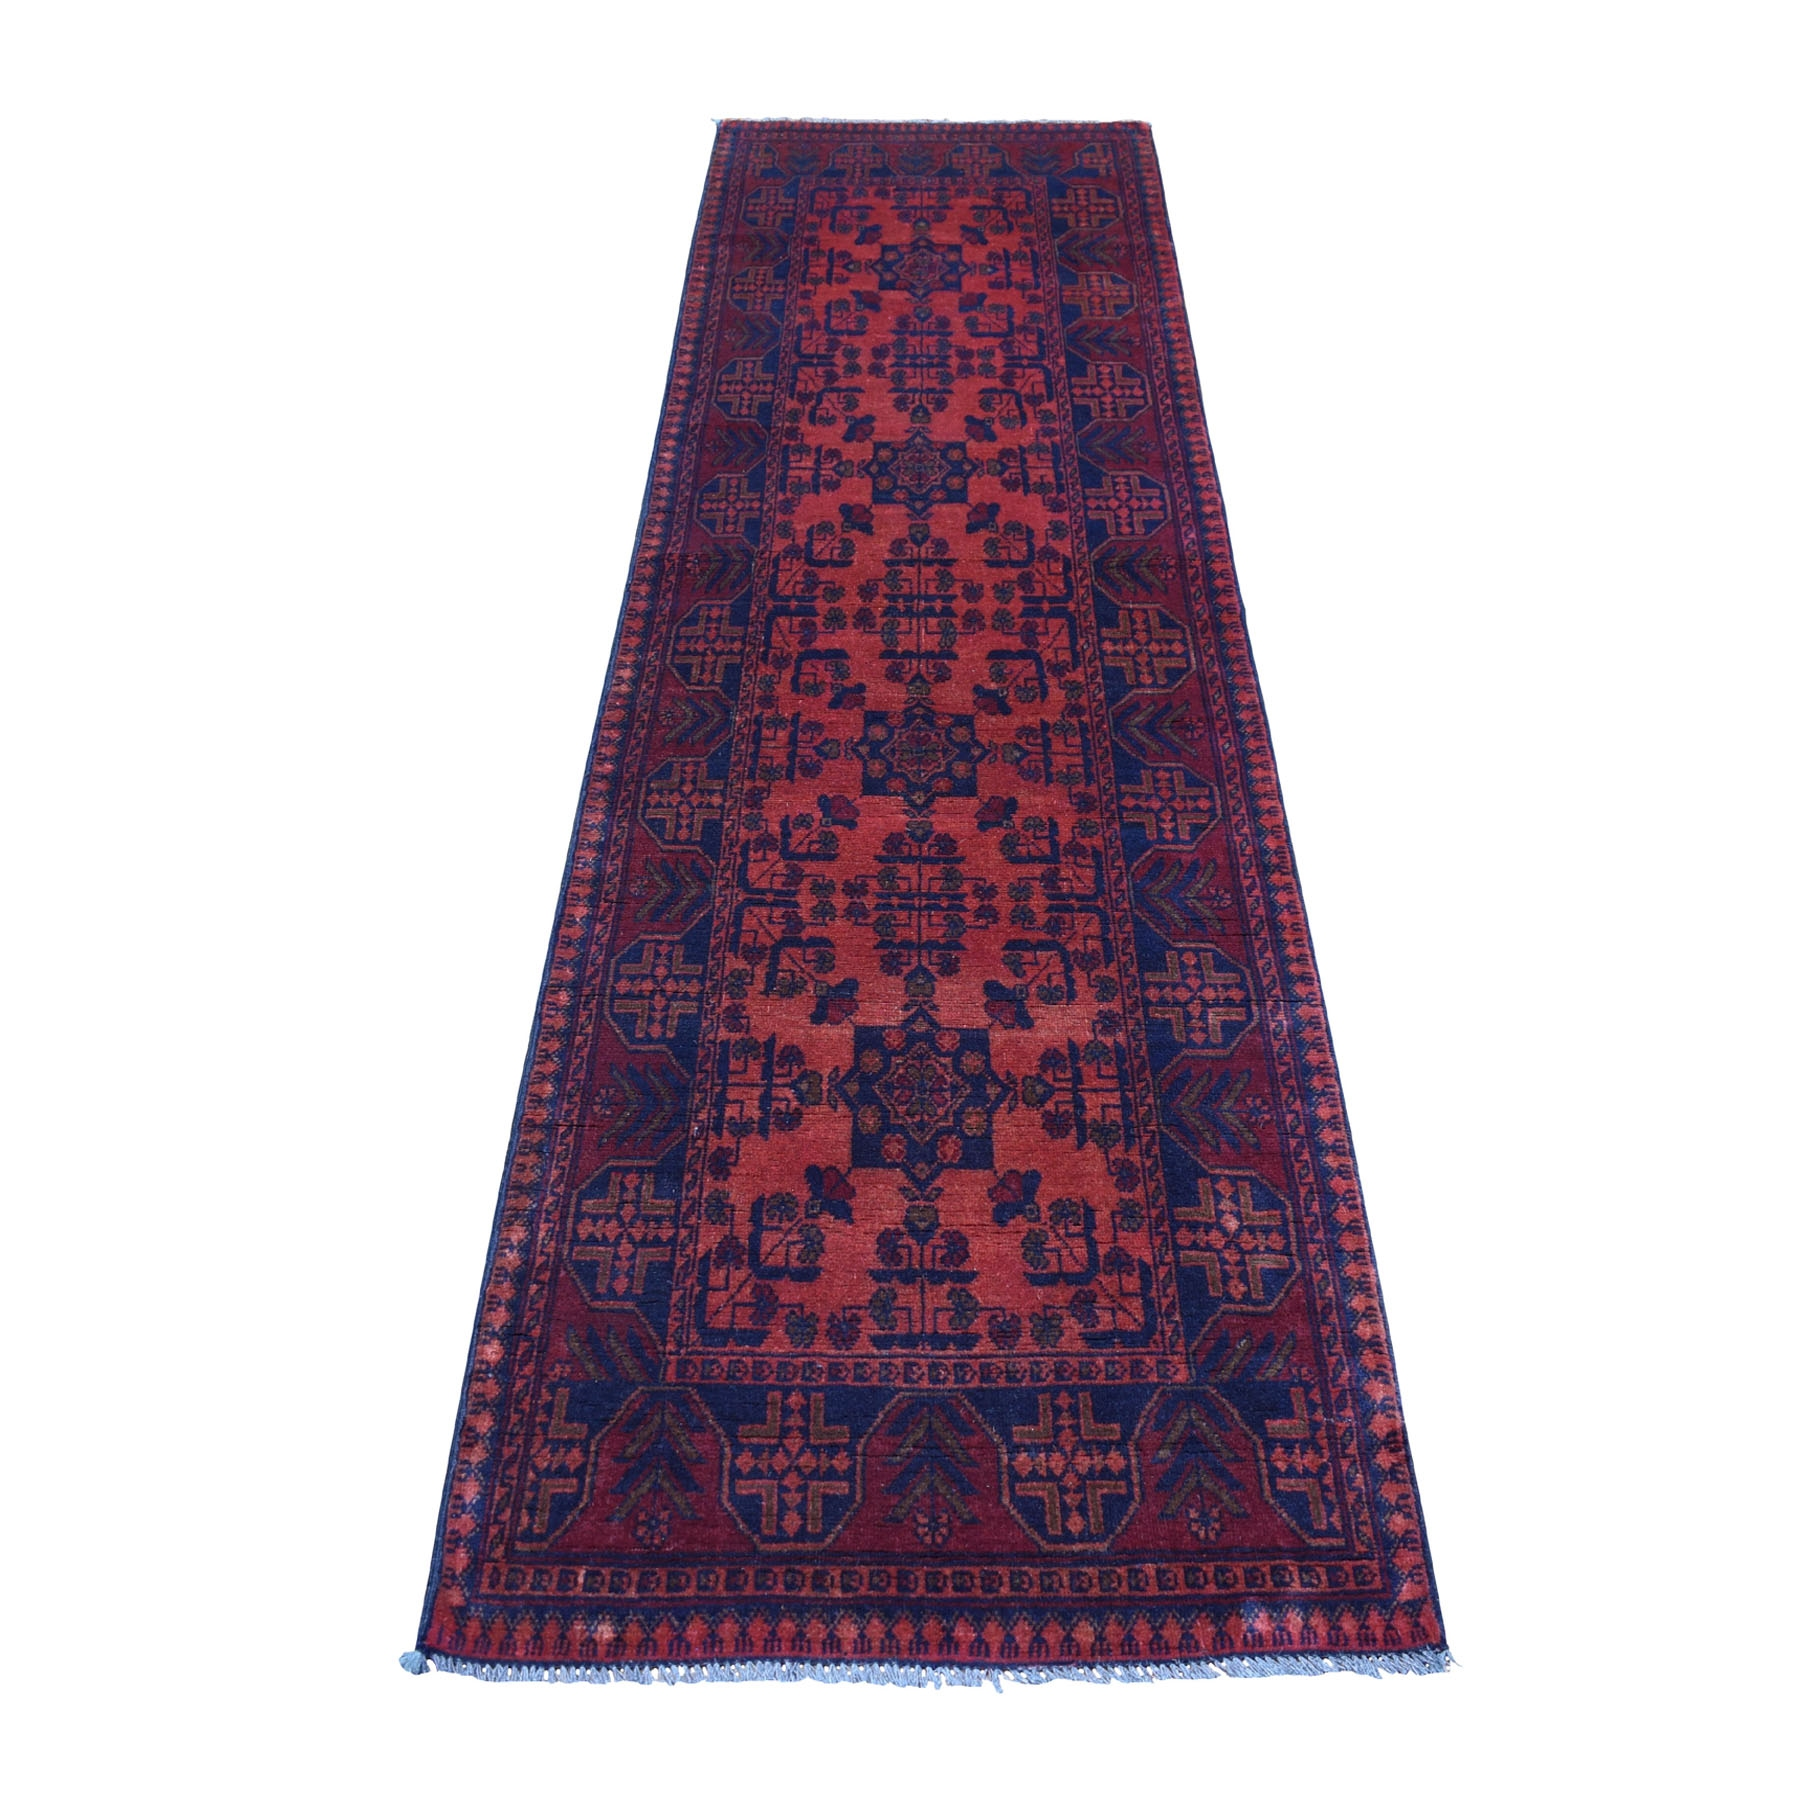 "2'8""x9'7"" Deep and Saturated Red Geometric Afghan Andkhoy Runner Pure Wool Hand Knotted Oriental Rug"